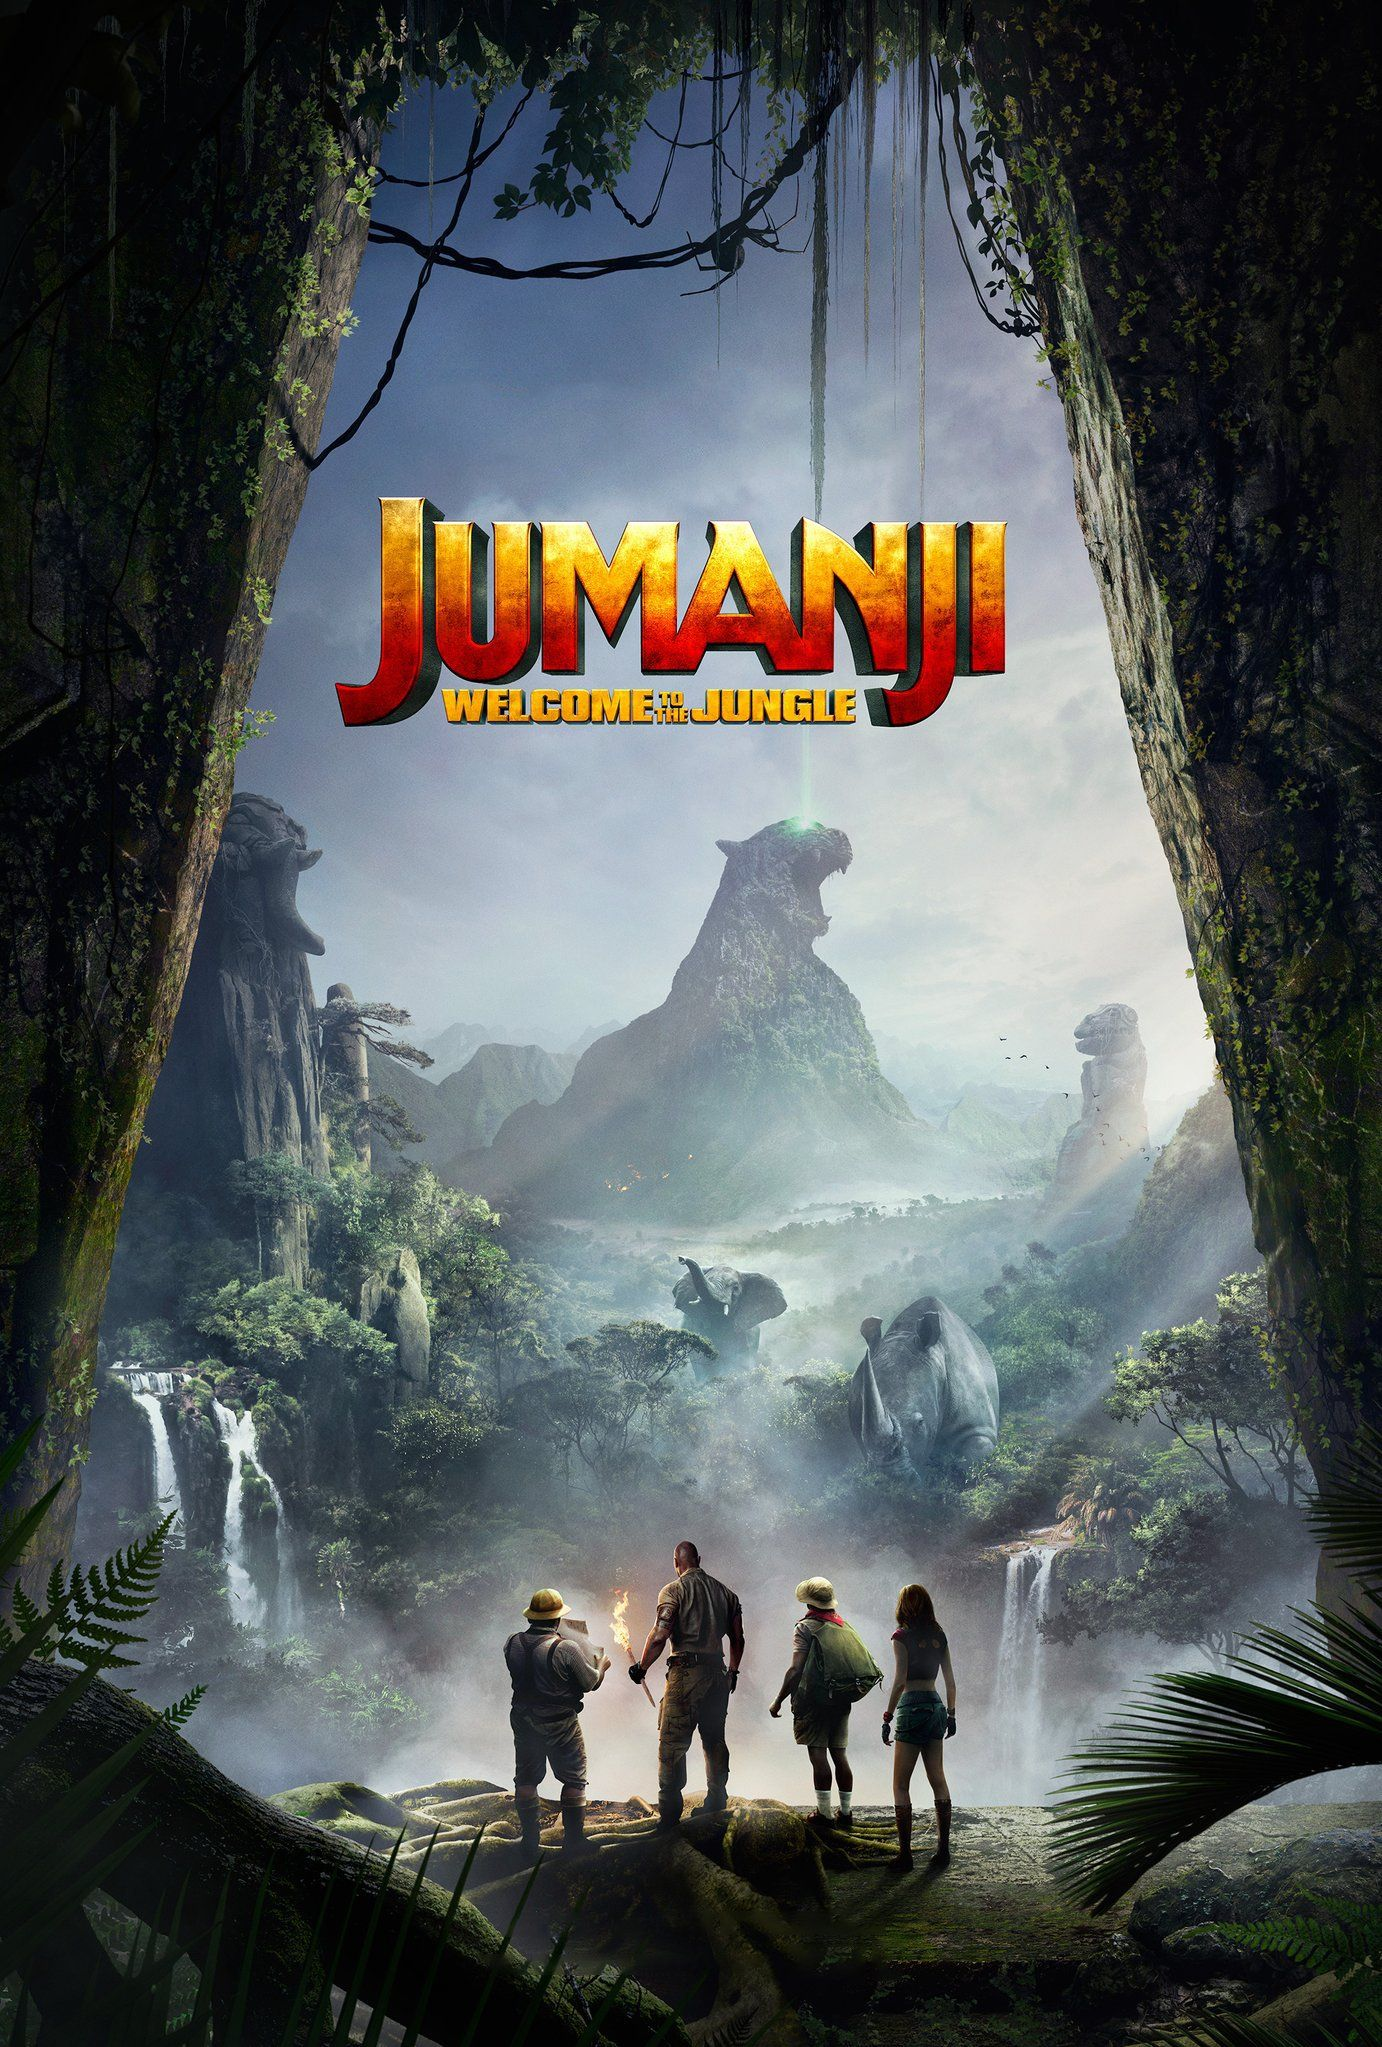 Jumanji Welcome To The Jungle Full Movie Watch Online Jumanji Welcome To The Jungle Full Movie Free Dow Assistir Jumanji Filmes Online Gratis Filmes On Line